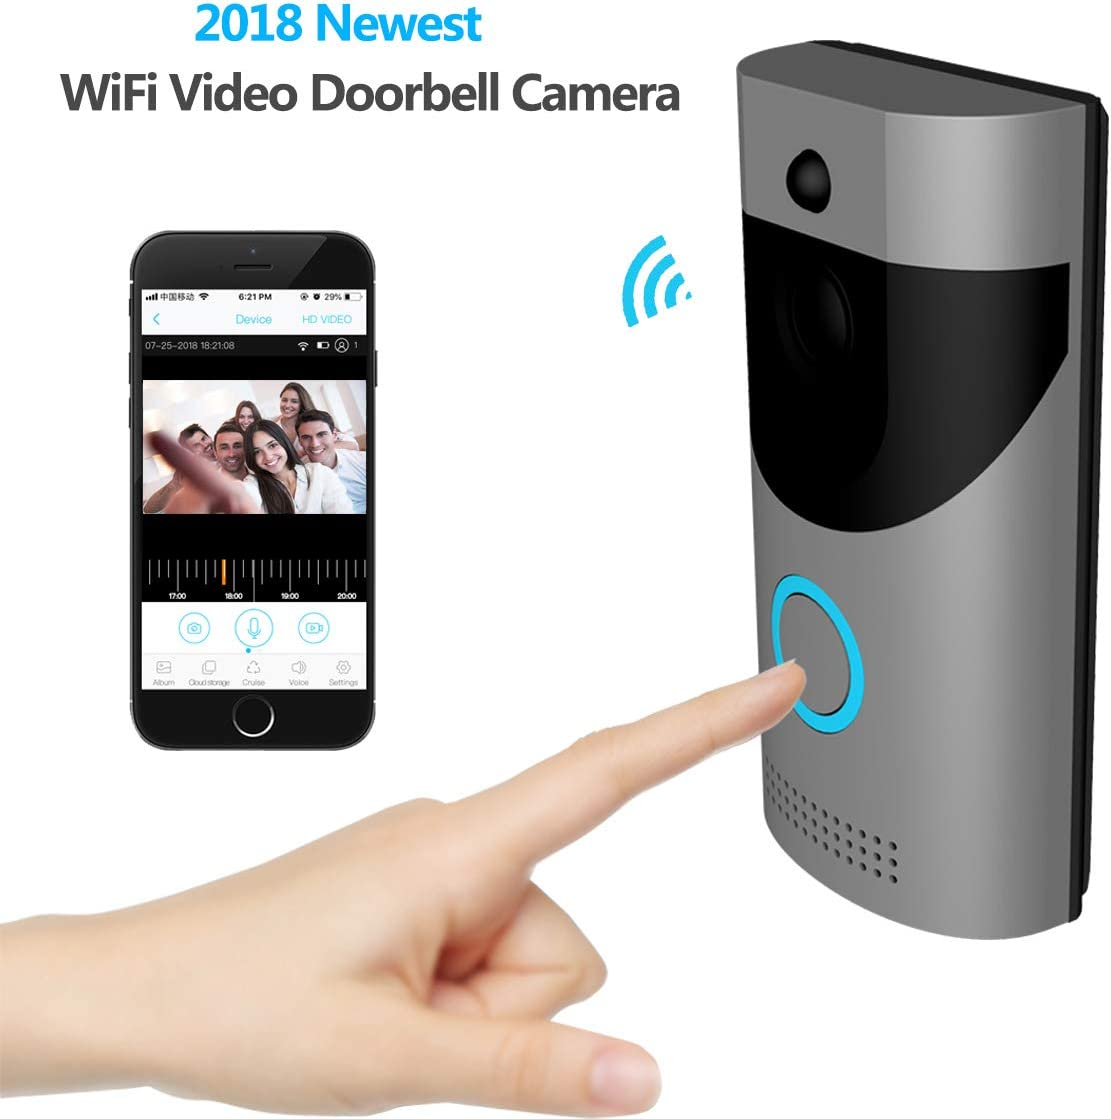 KAMRE Smart Wireless Video Doorbell, HD 720P Home Security Camera with Free Cloud Services 166 Wide Angle Real-Time Two-Way Talk and Video PIR Motion Detection Night Vision, Built-in Two Batteries